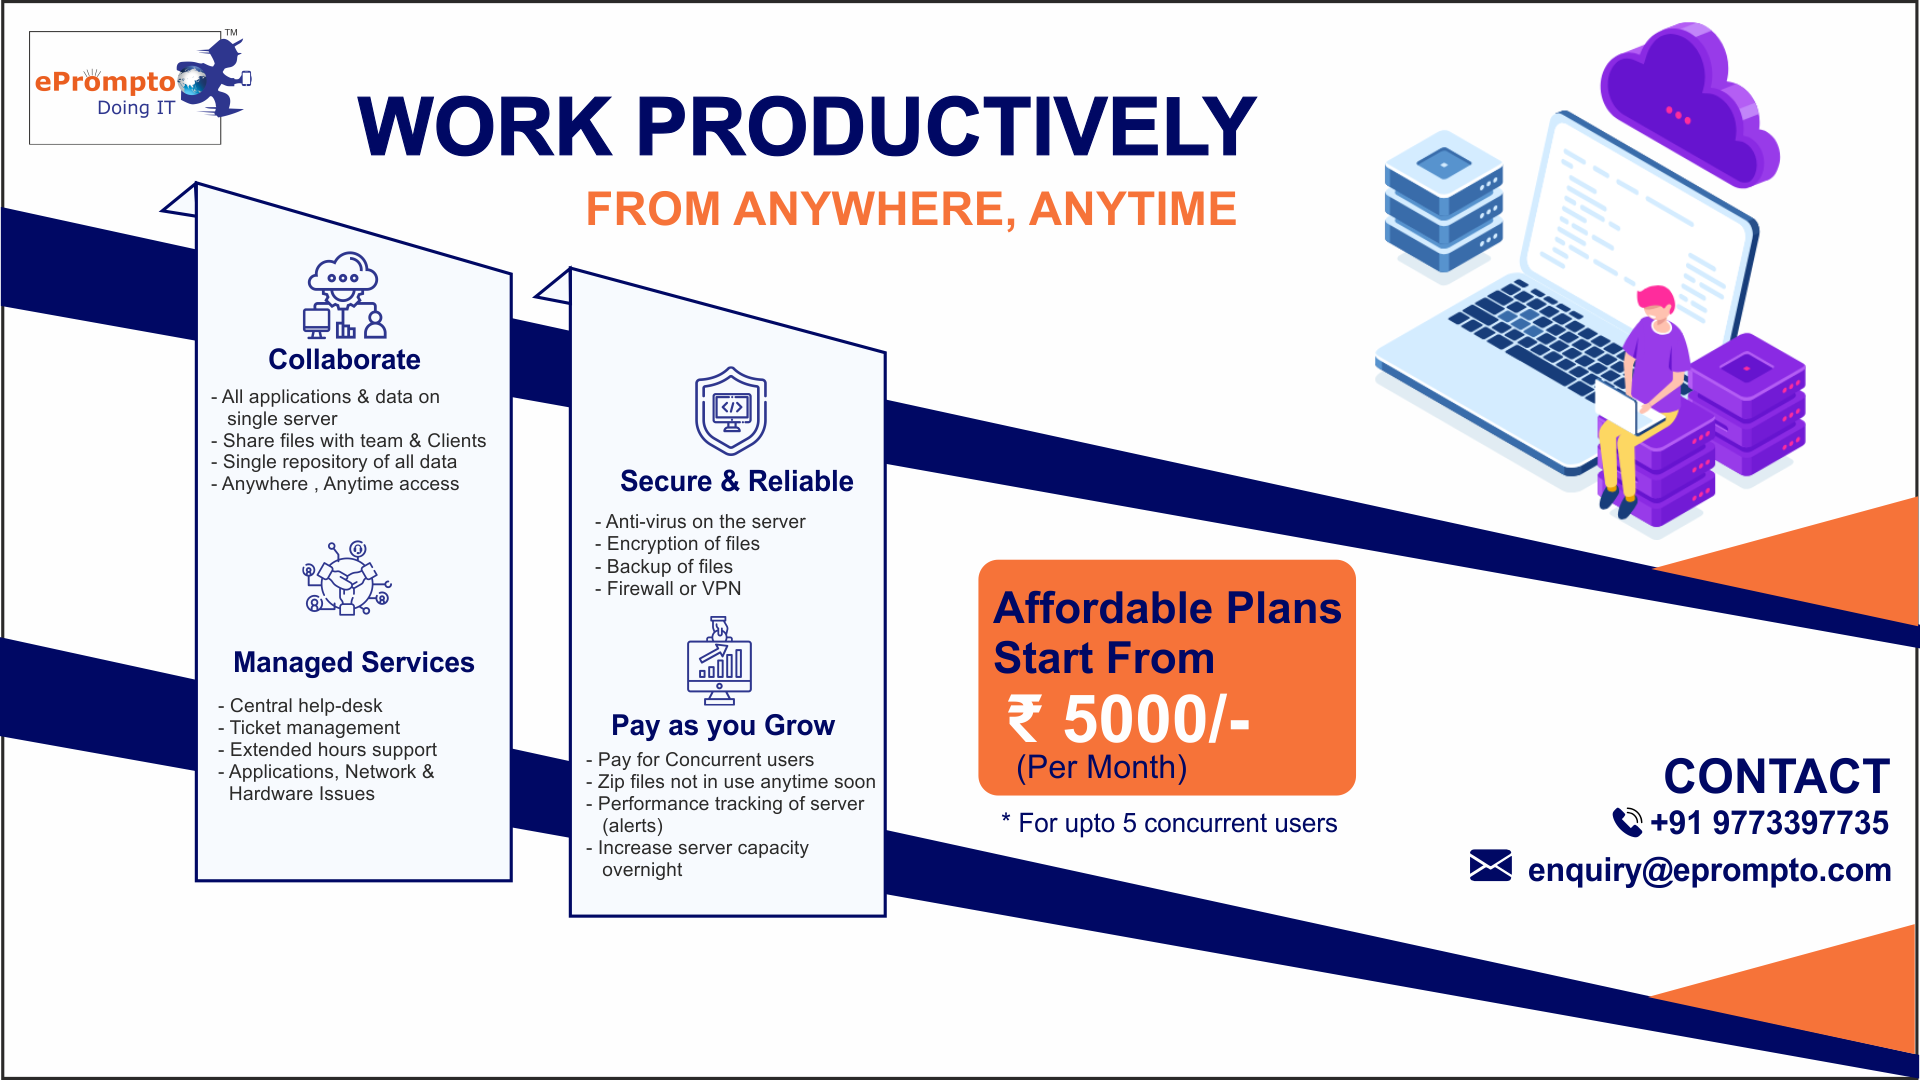 Save More Than 30% Cost On On-premise Server By Migrating To Cloud